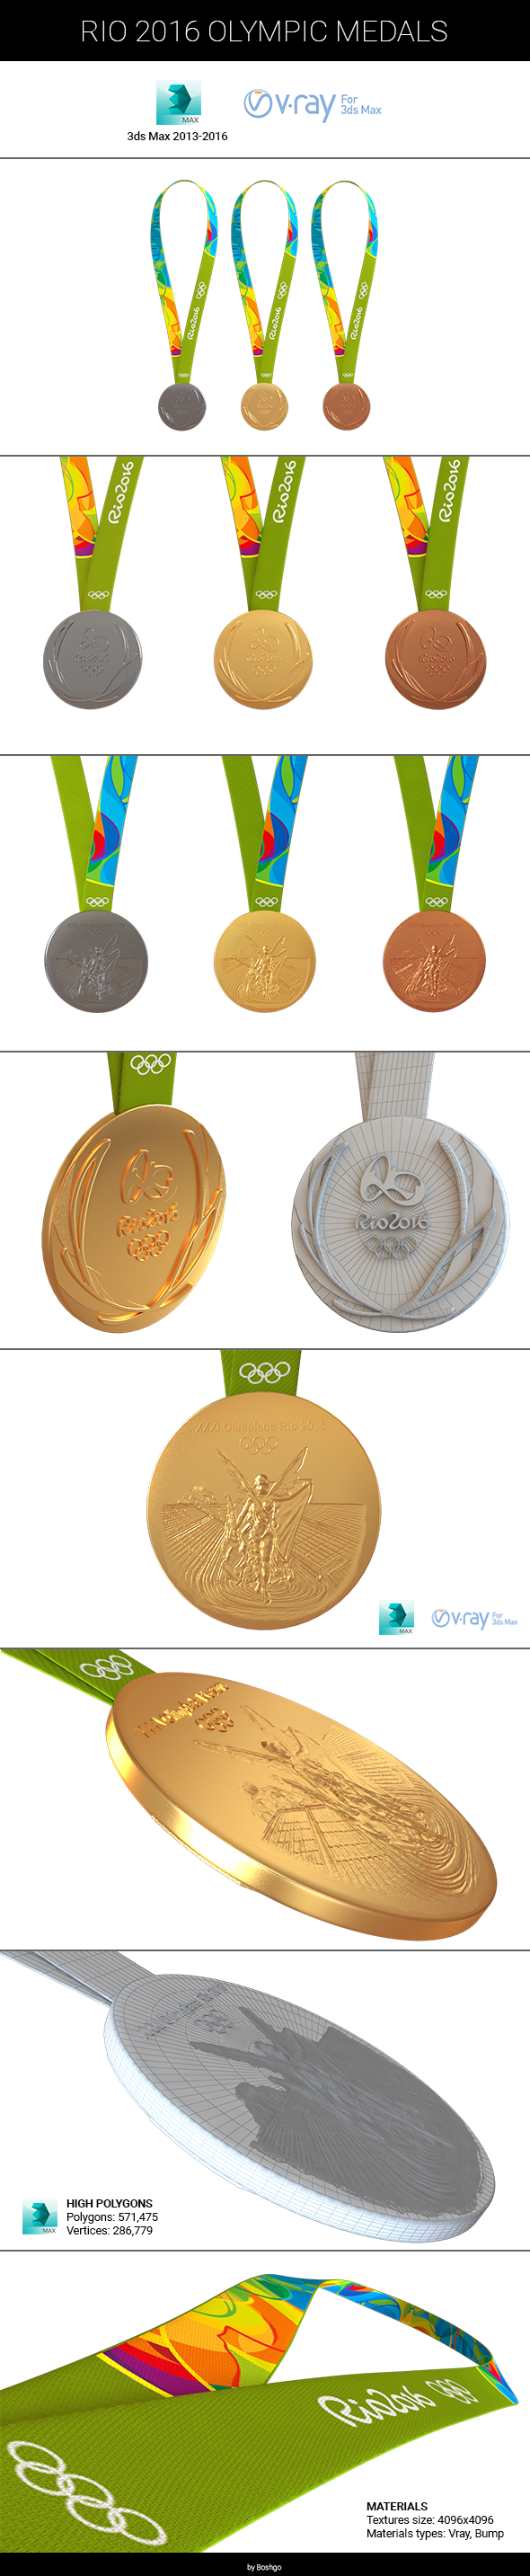 Rio 2016 Medals - 3DOcean Item for Sale